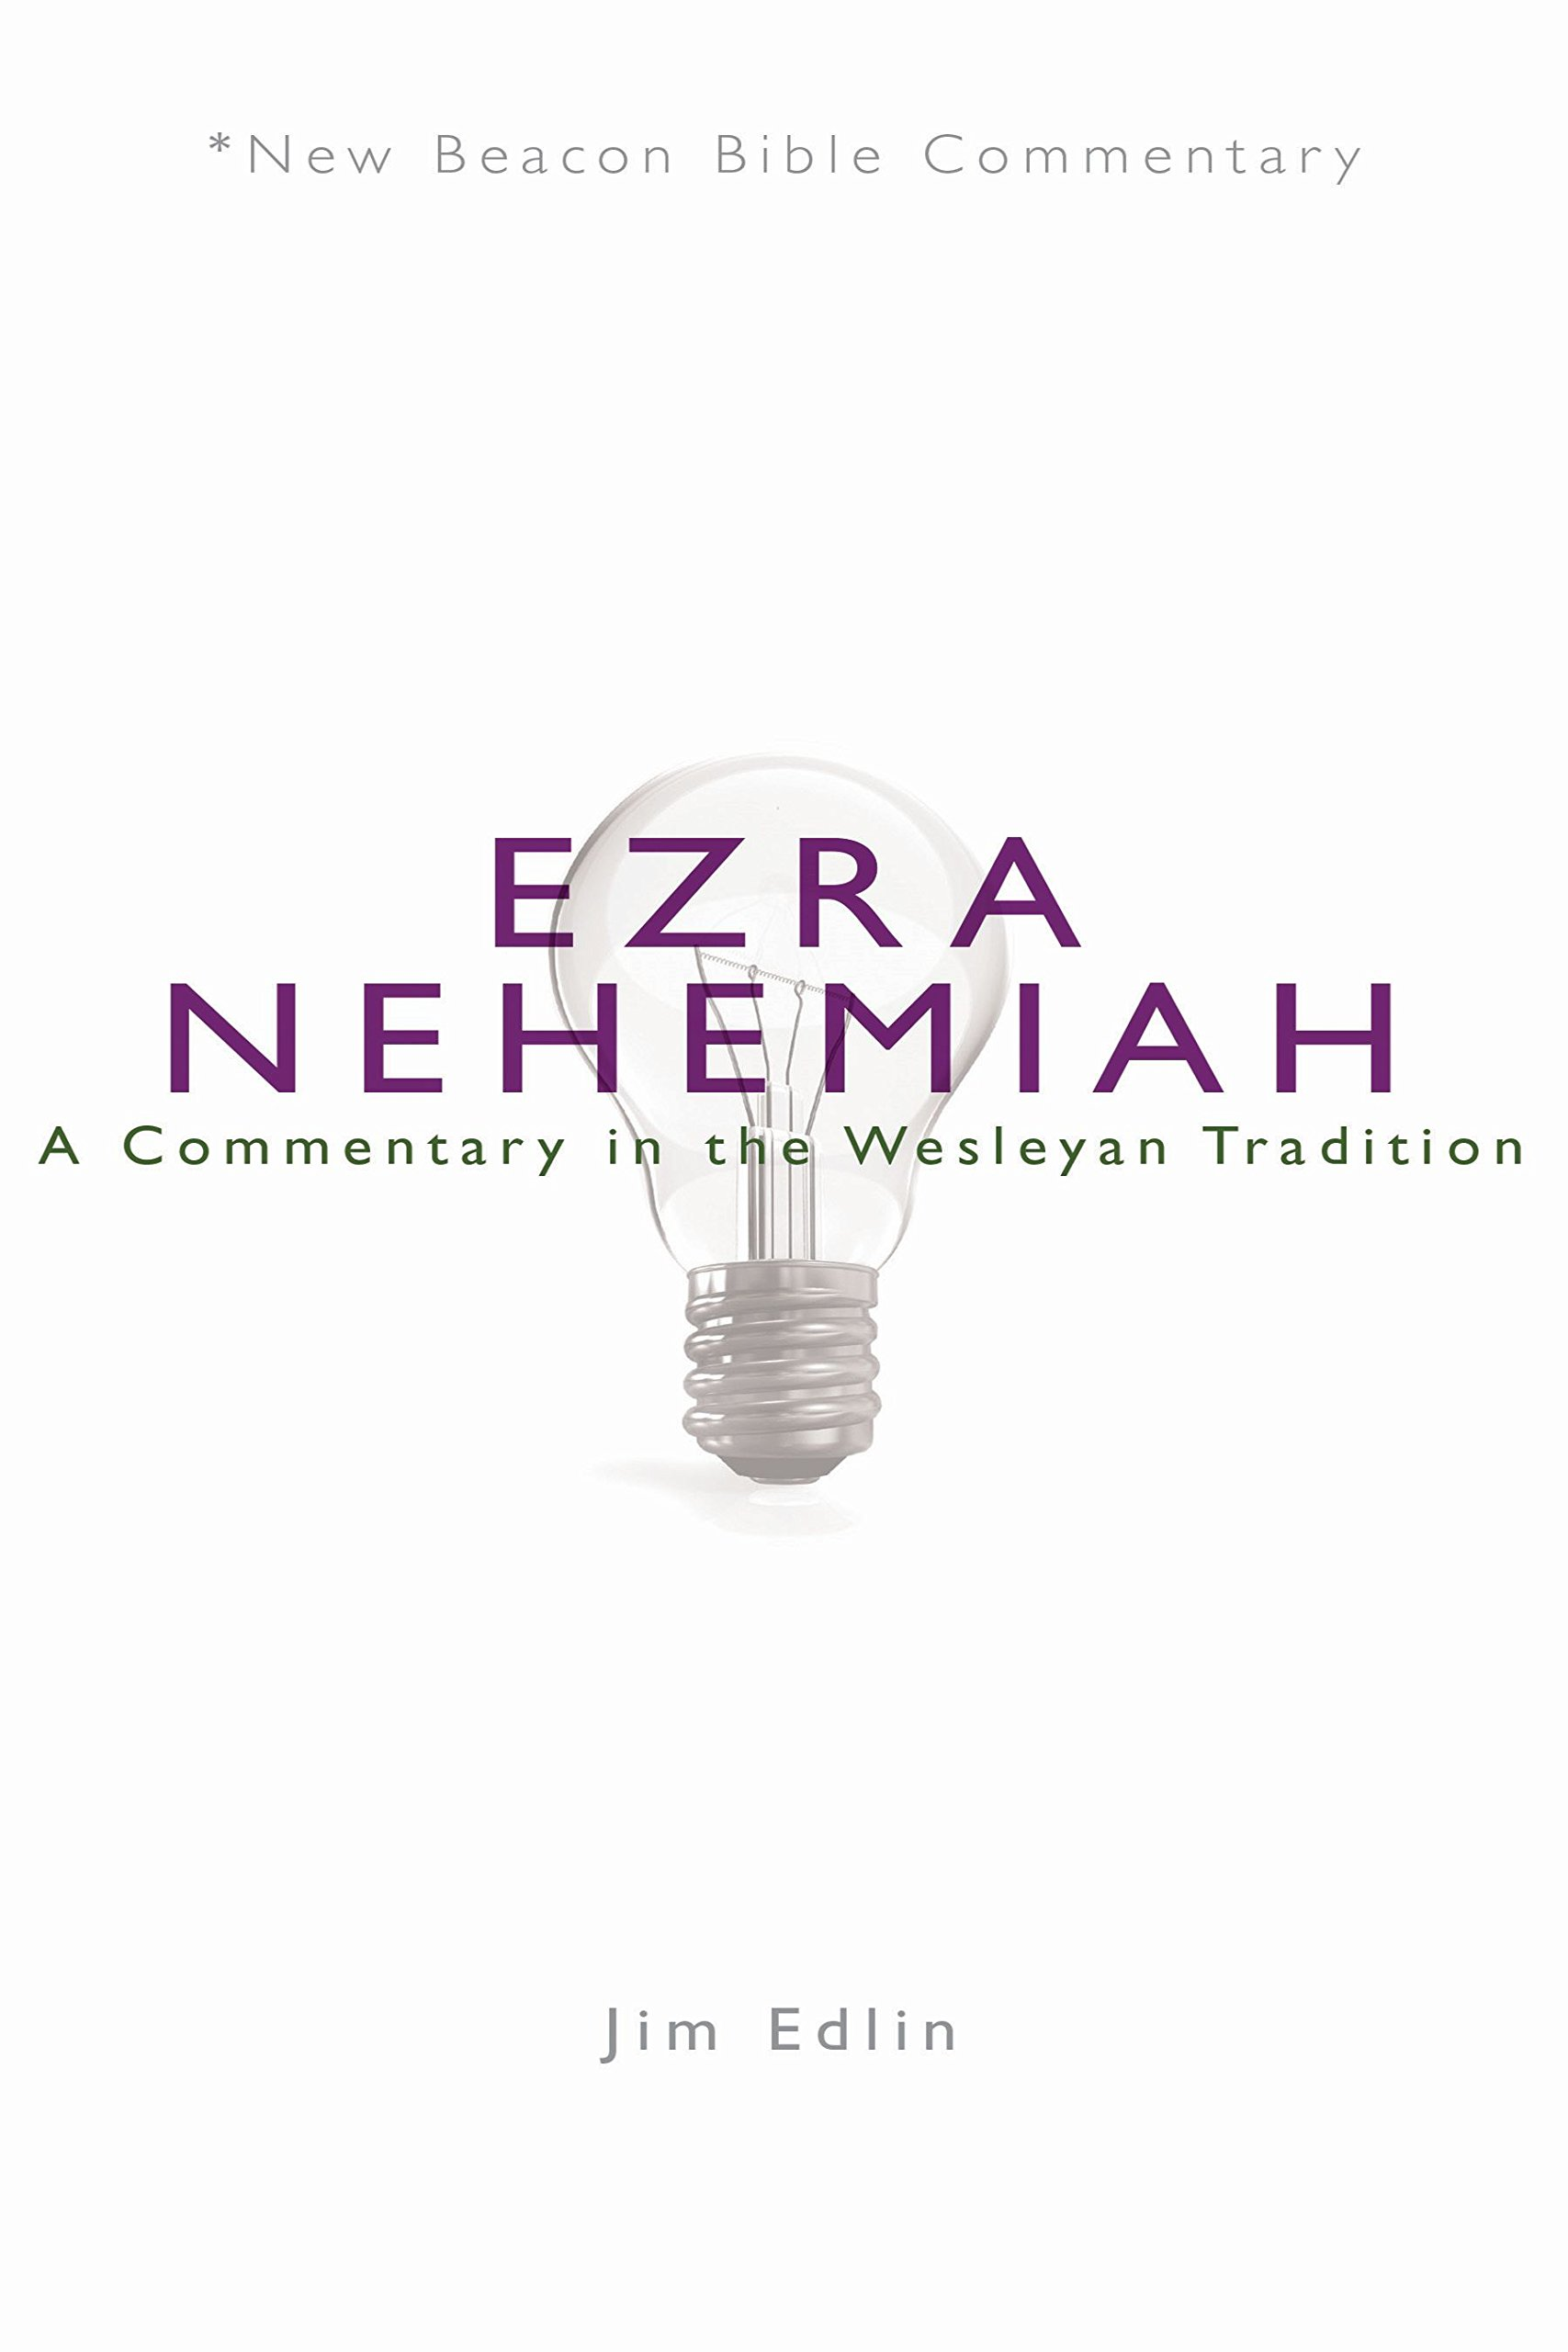 Read Online NBBC, Ezra/Nehemiah: A Commentary in the Wesleyan Tradition (New Beacon Bible Commentary) ebook